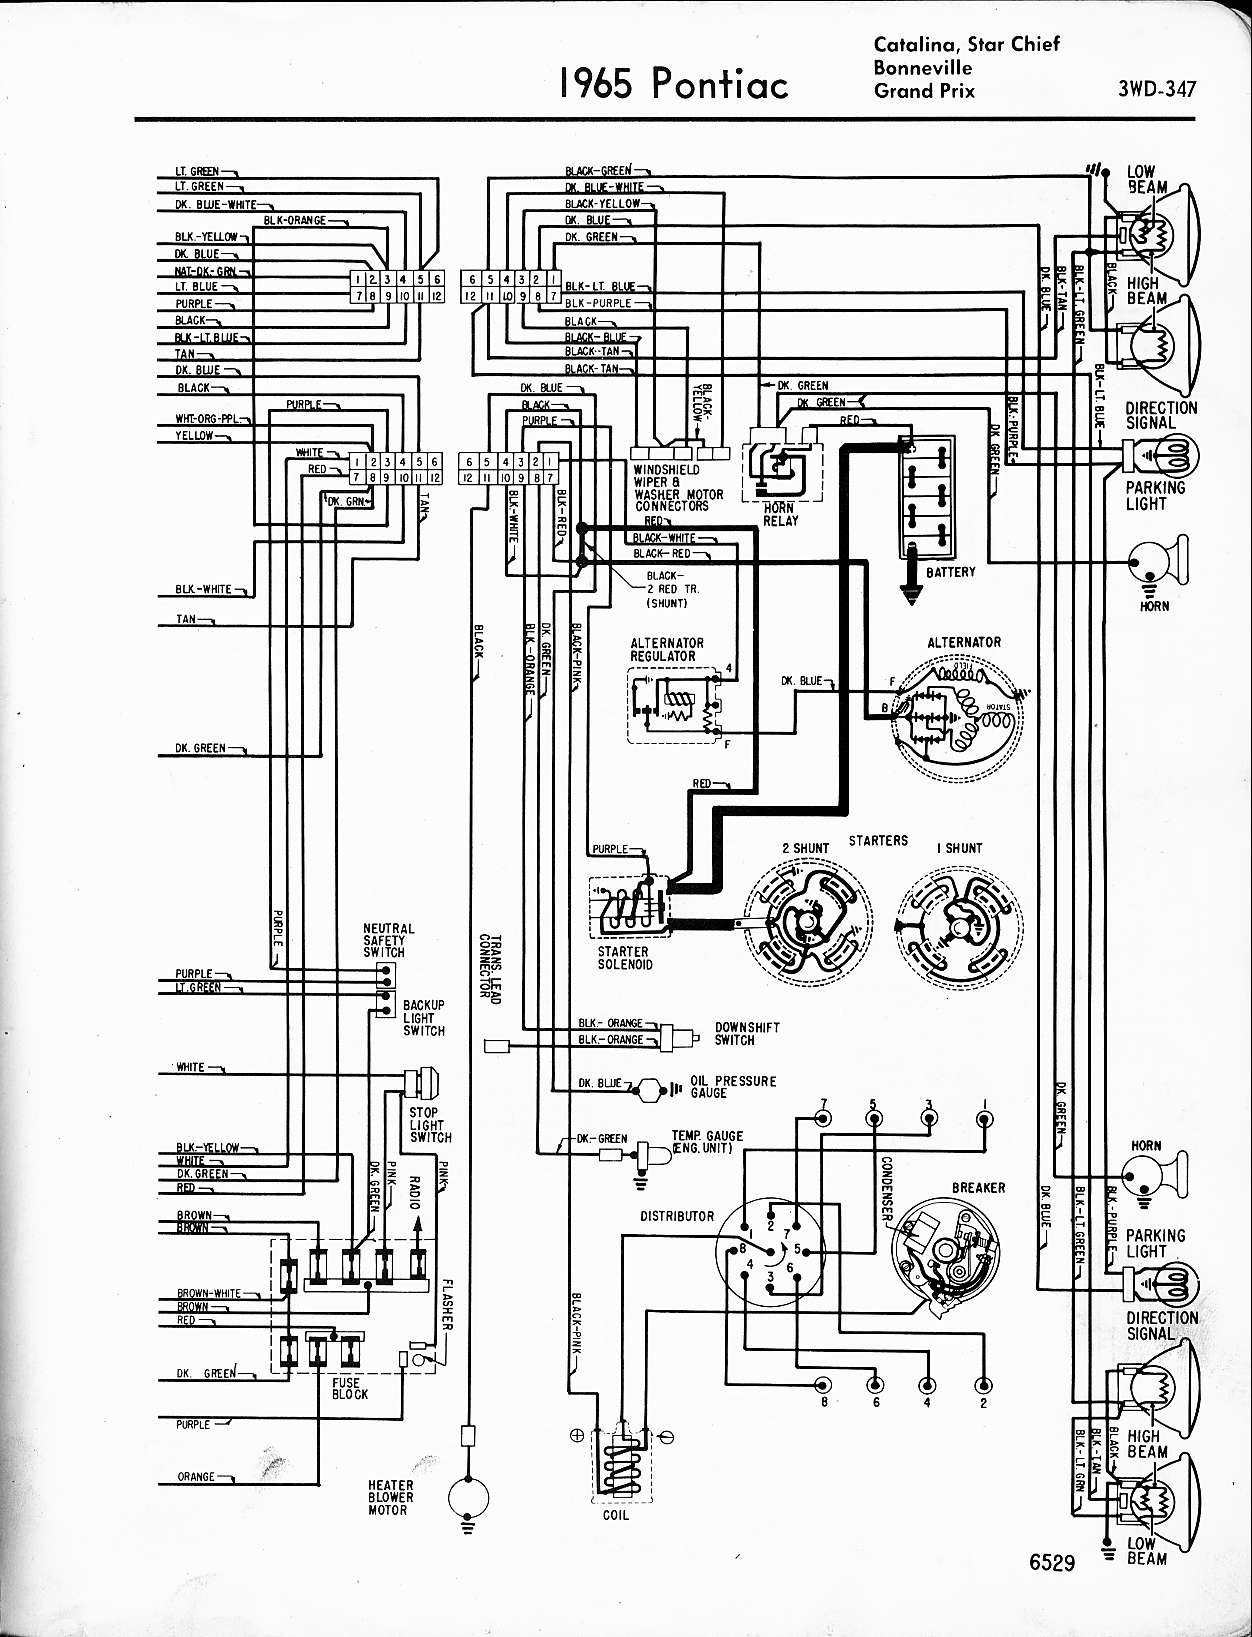 1964 Pontiac Lemans Wiring Diagram Simple Options 1969 El Camino Lights Wallace Racing Diagrams Firebird